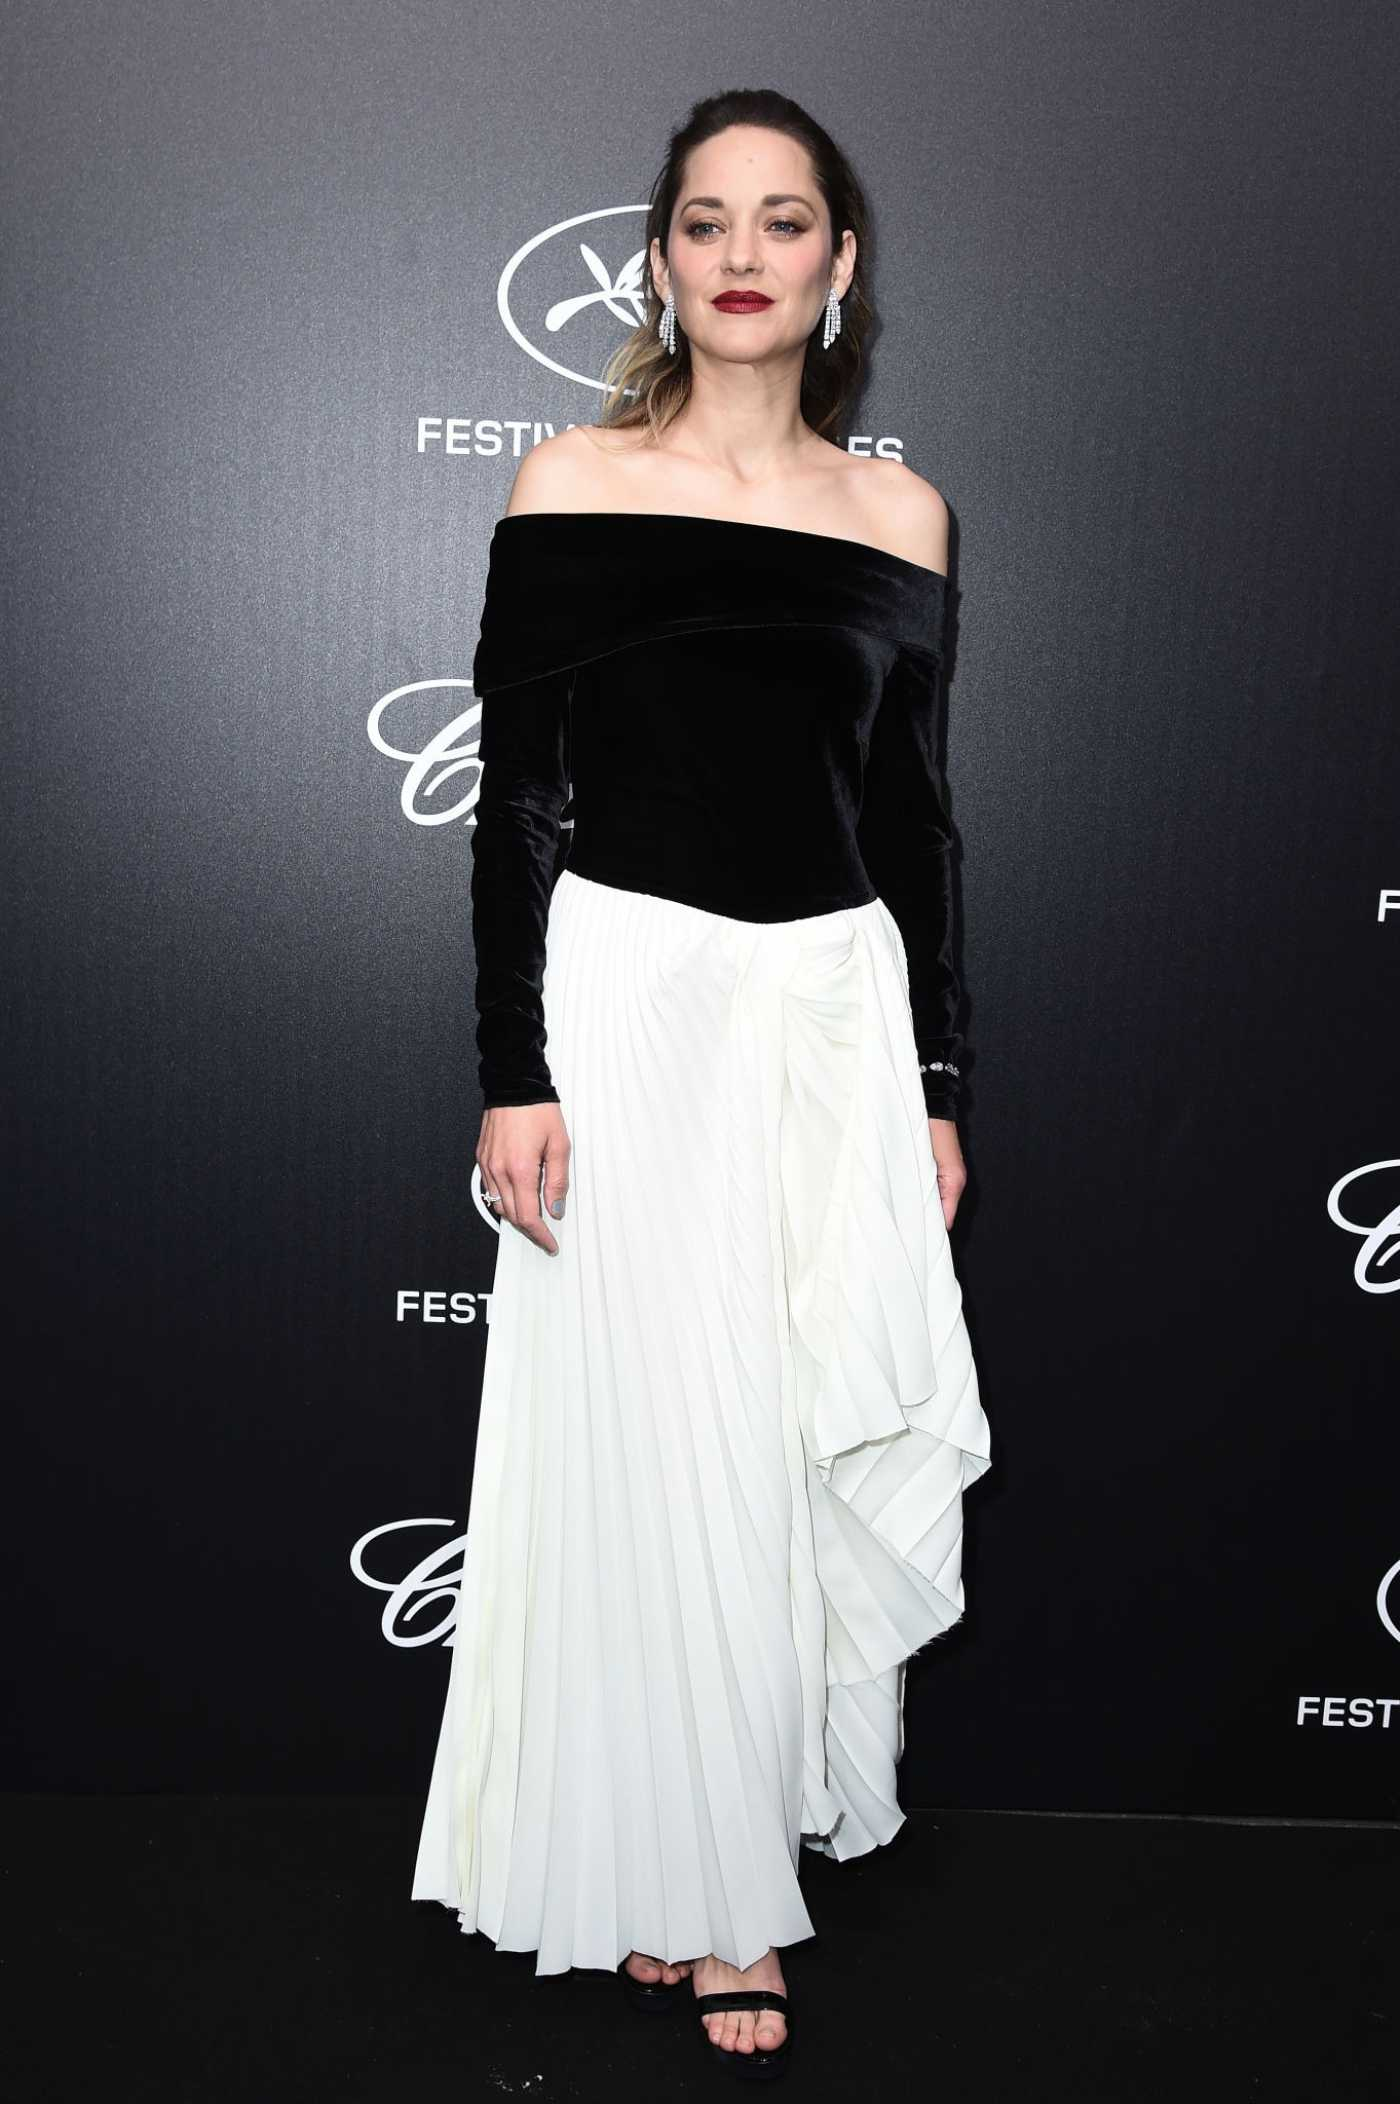 Marion Cotillard Attends the Chopard Trophy Event During the 72nd Annual Cannes Film Festival in Cannes 05/20/2019